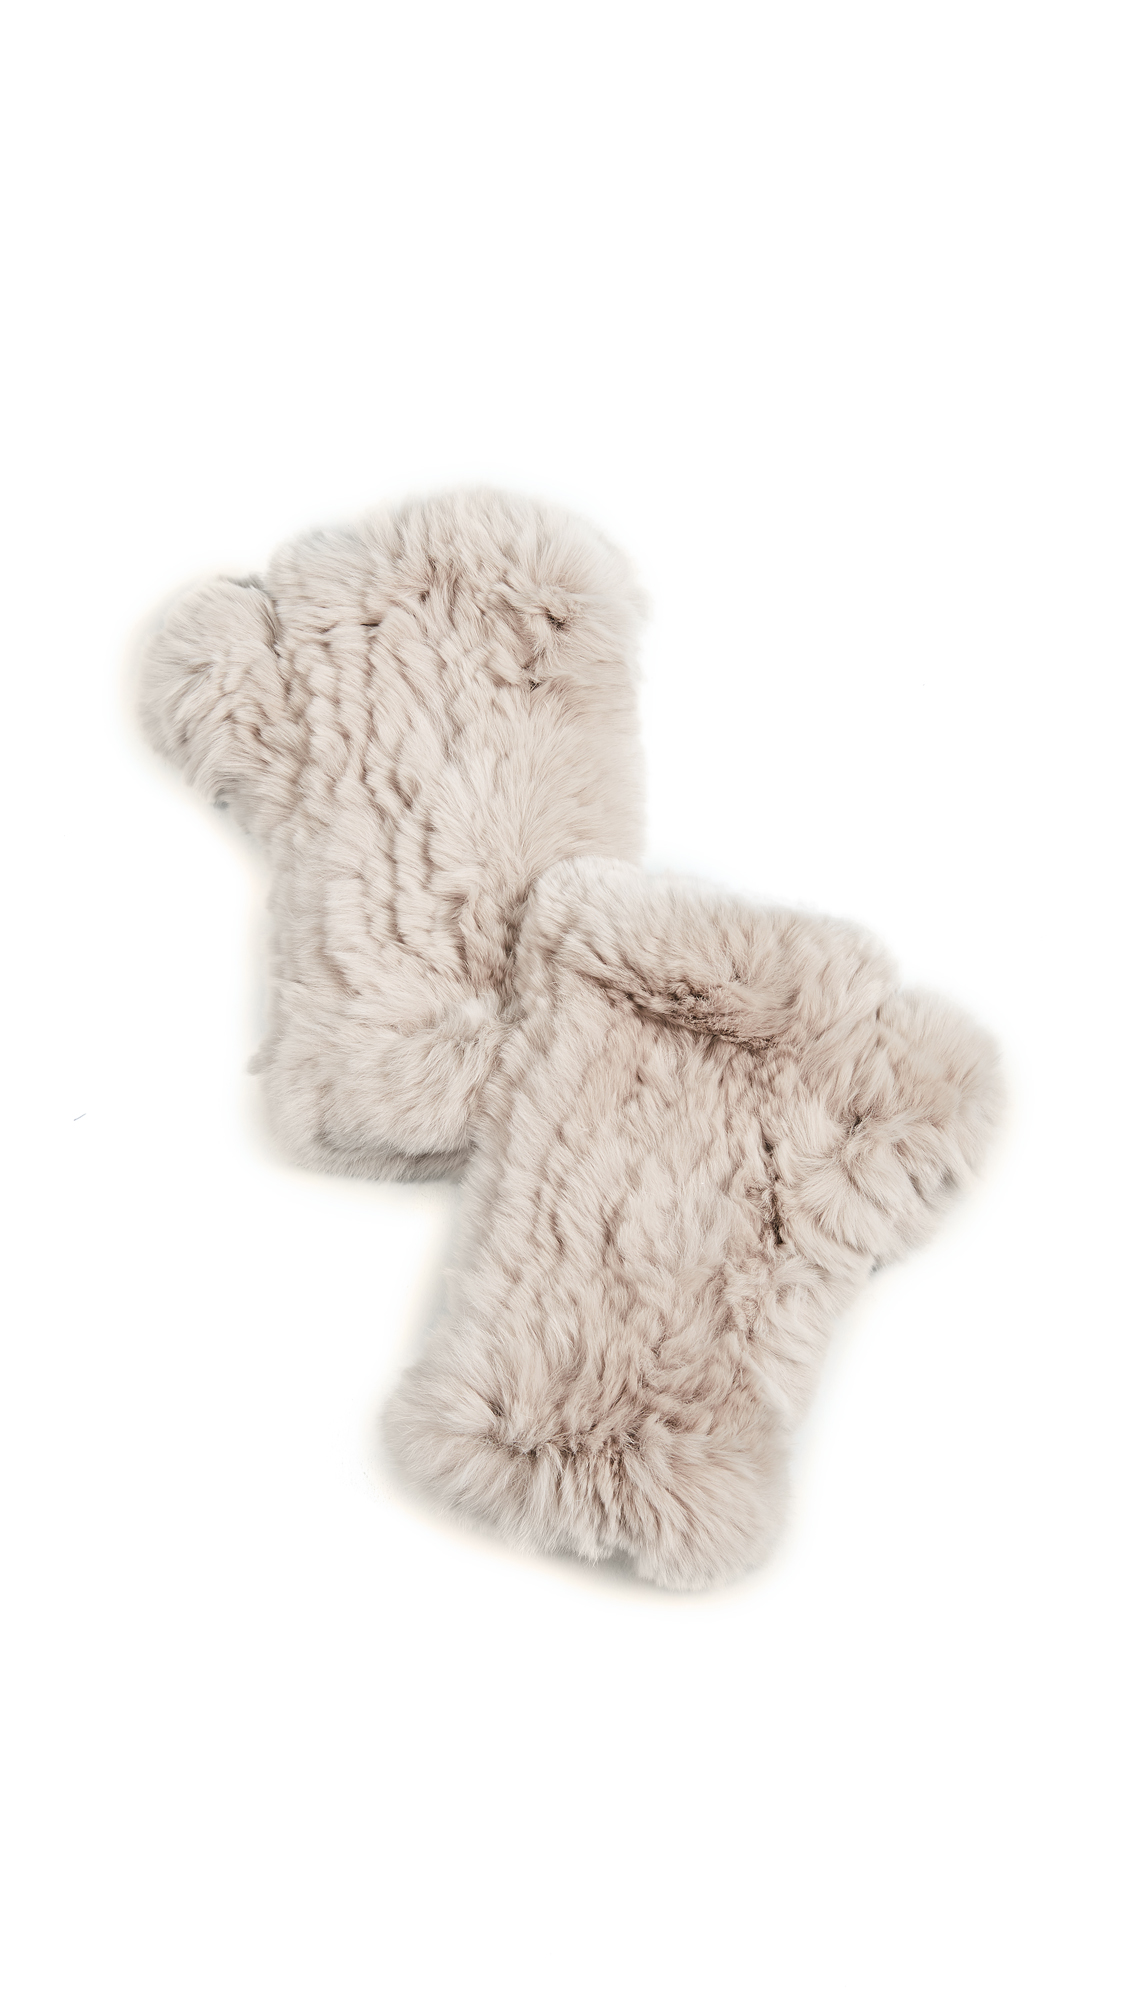 Adrienne Landau Rex Rabbit Fur Fingerless Gloves - Light Grey